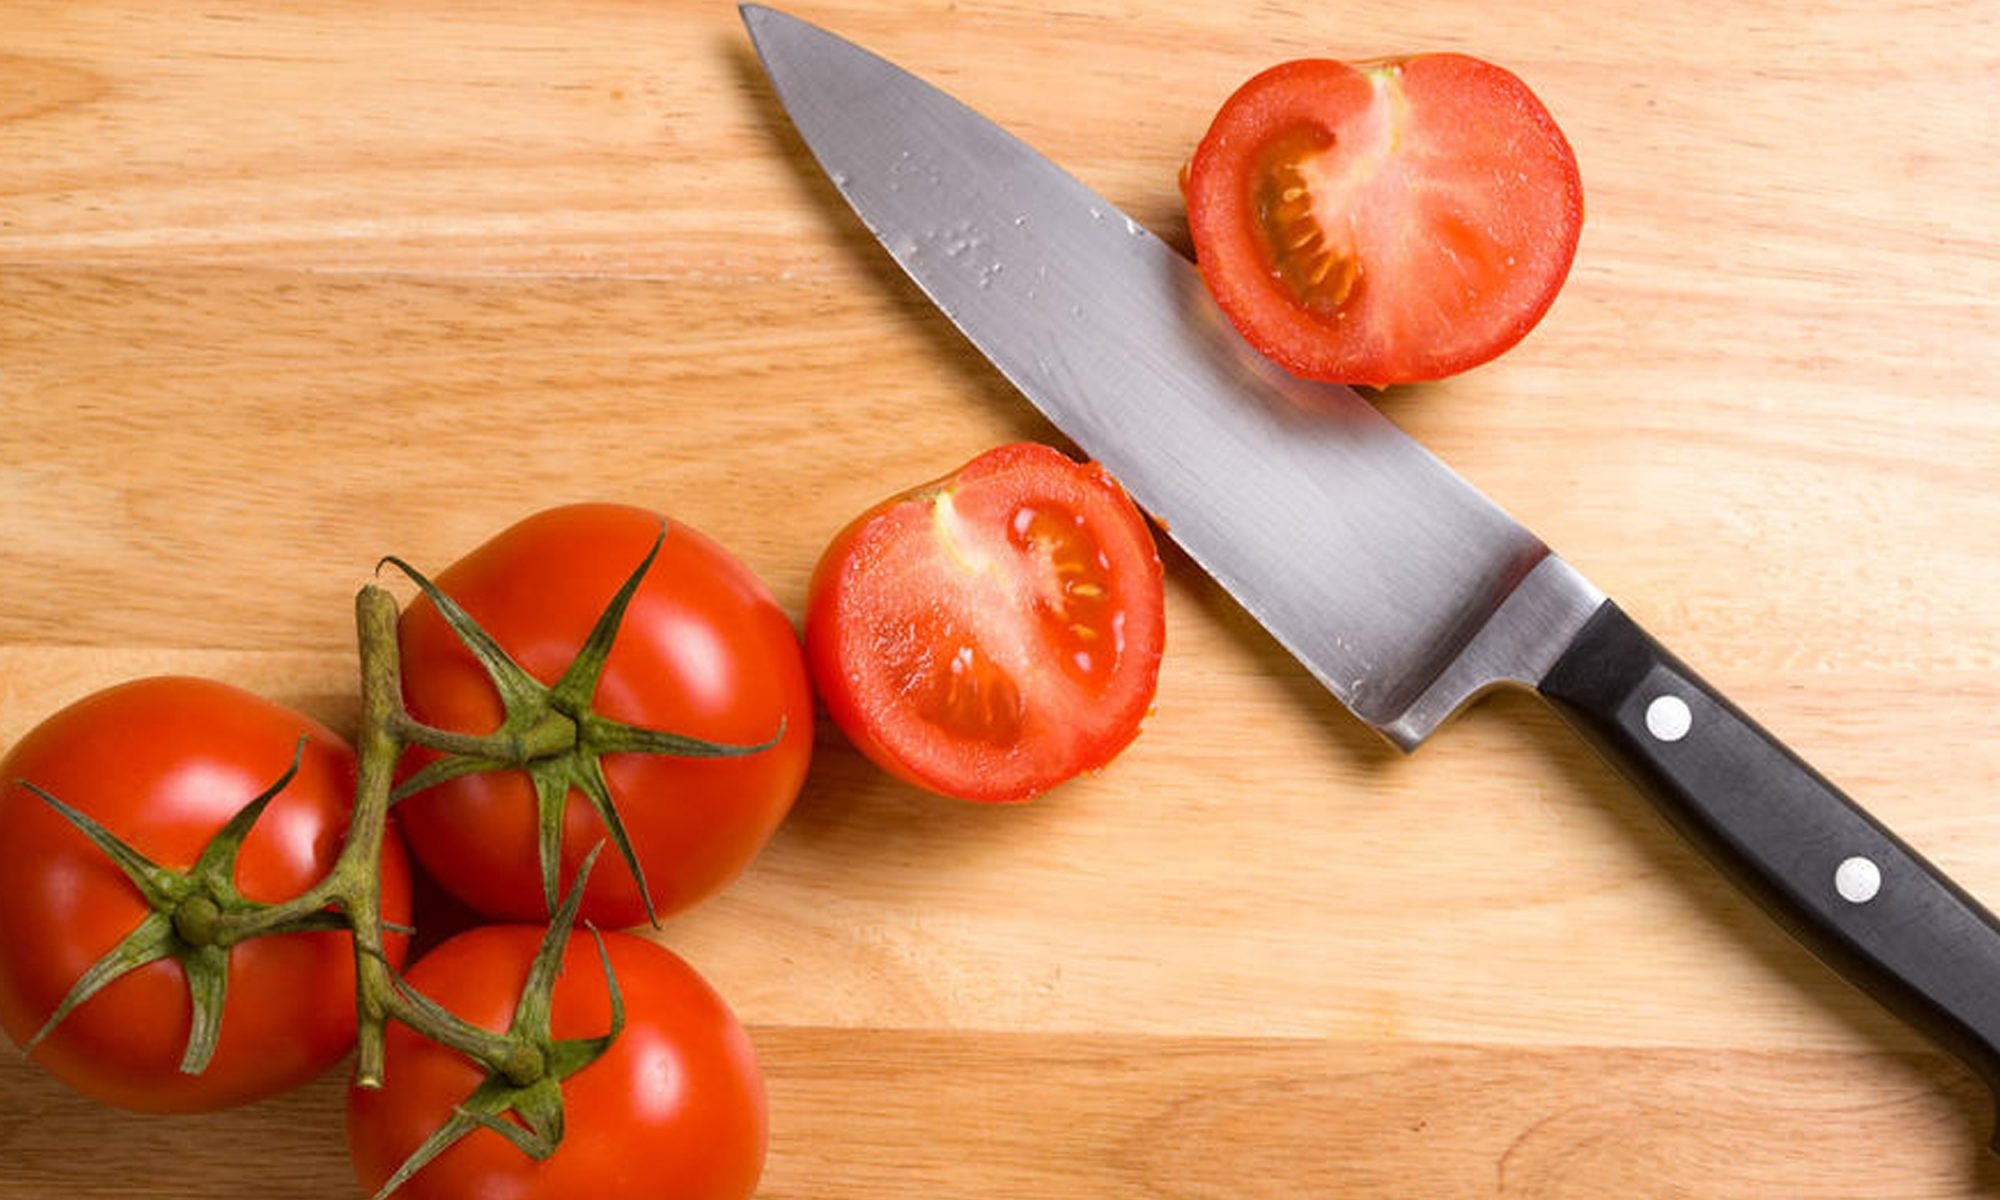 EC: This Tomato-Slicing Test Will Tell You How Dull Your Knife Is